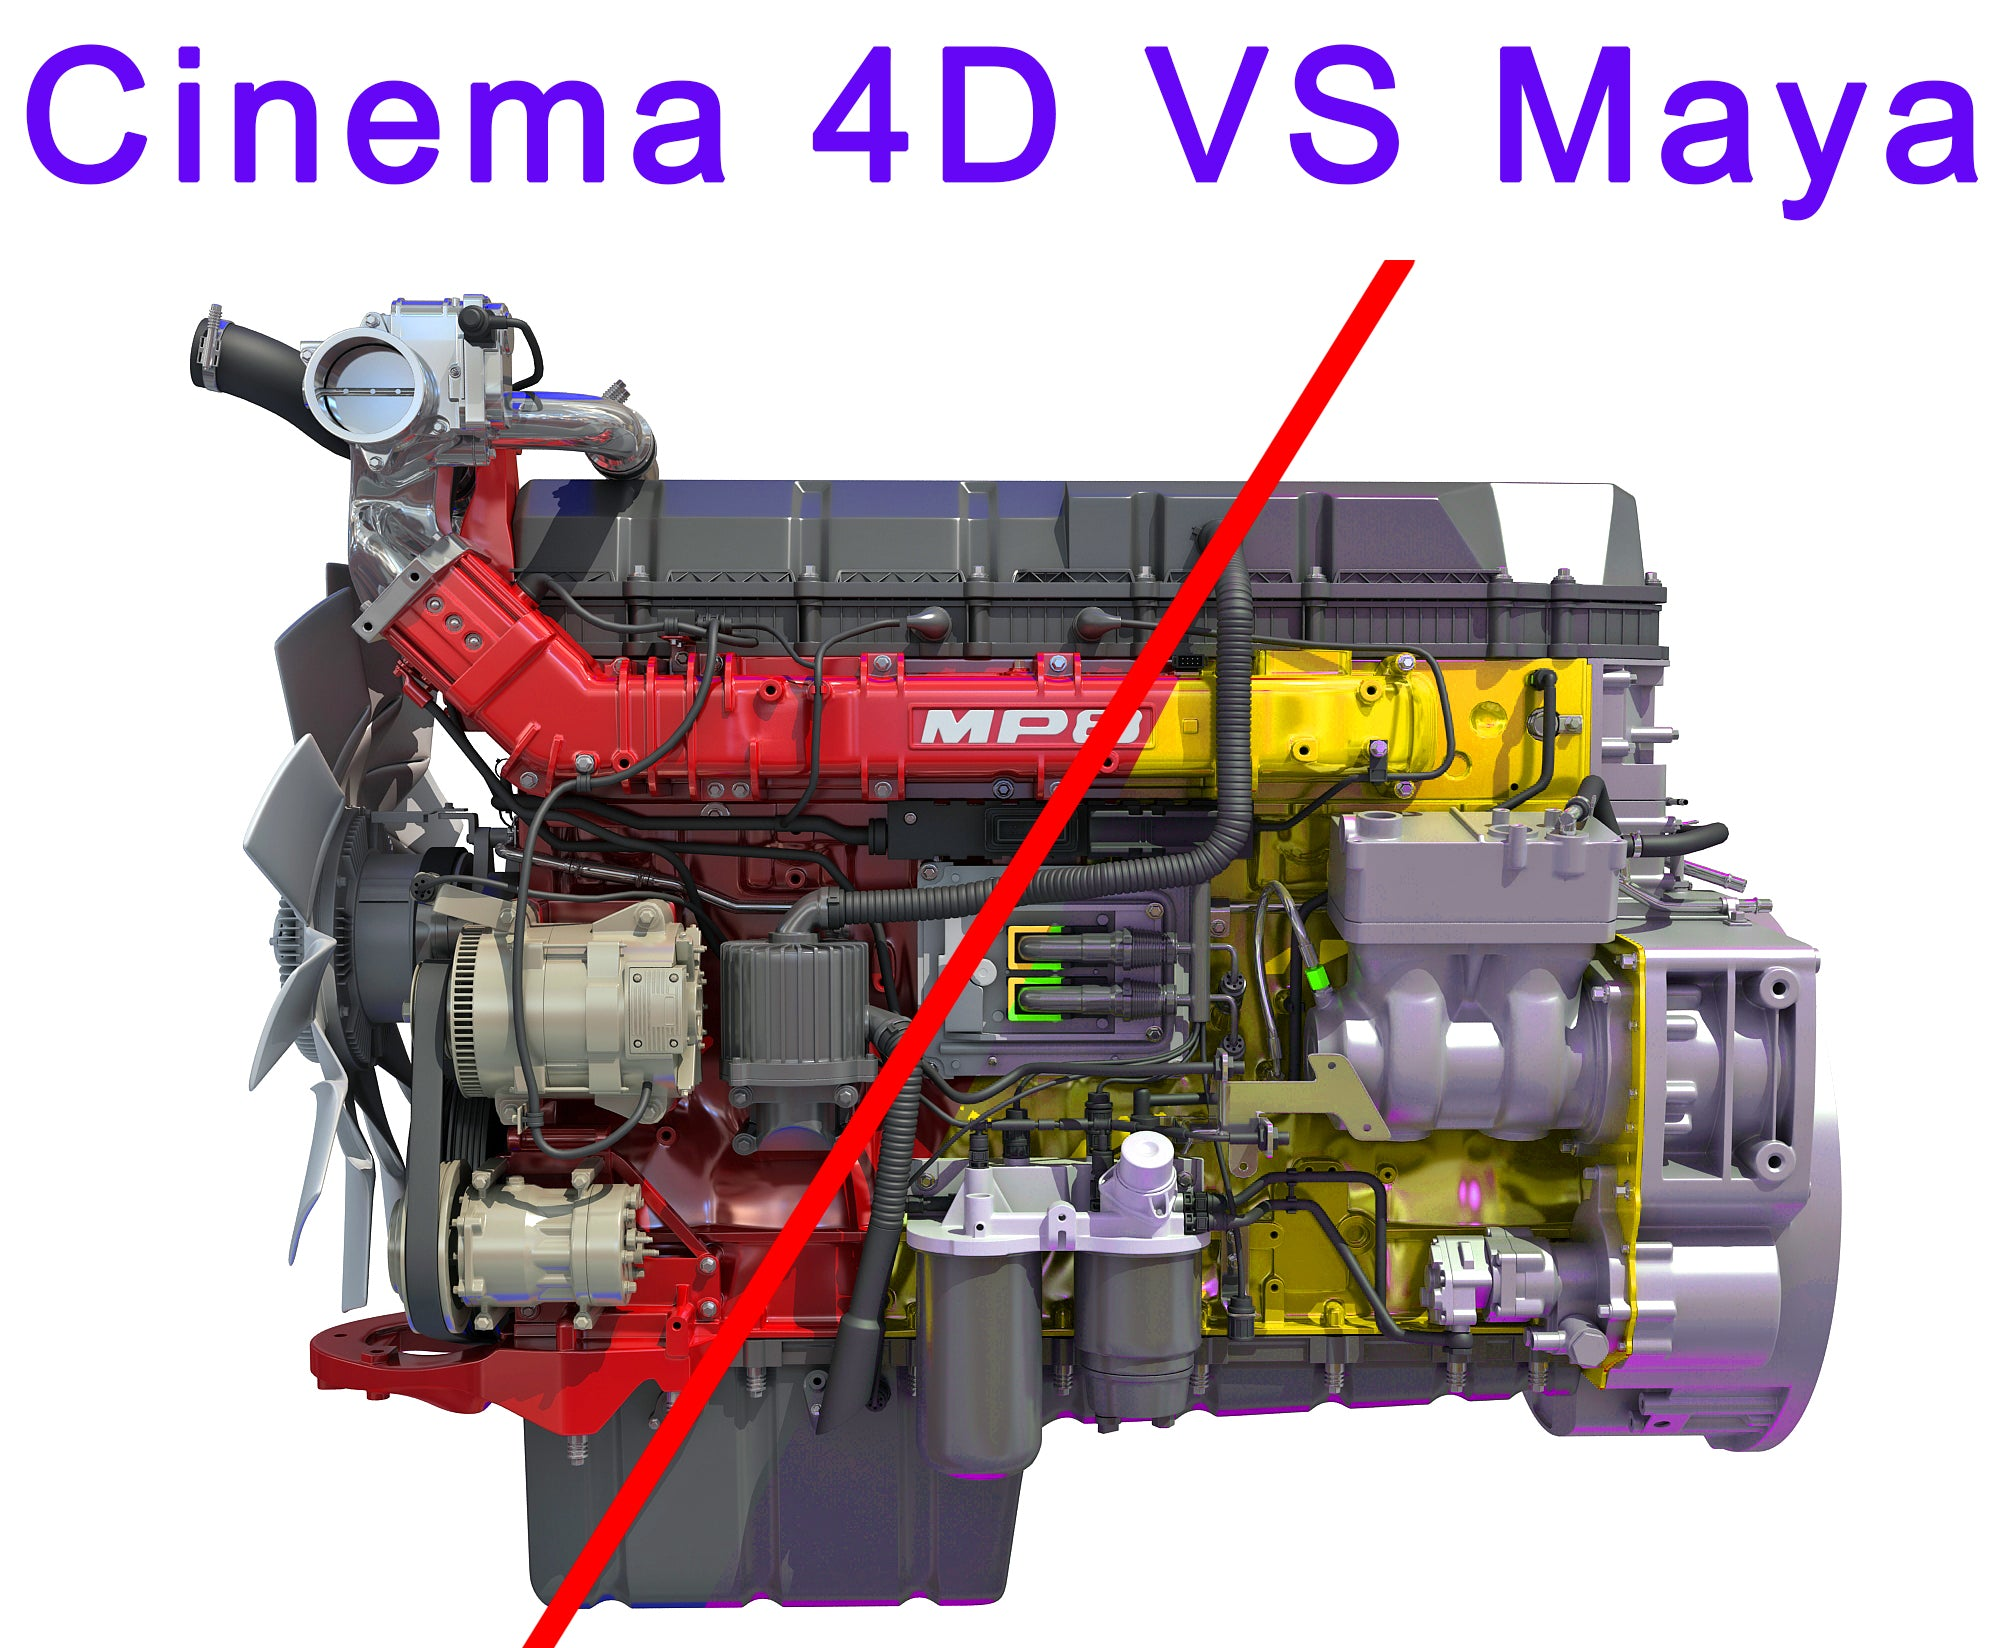 Cinema 4D VS Maya – Which Is Better